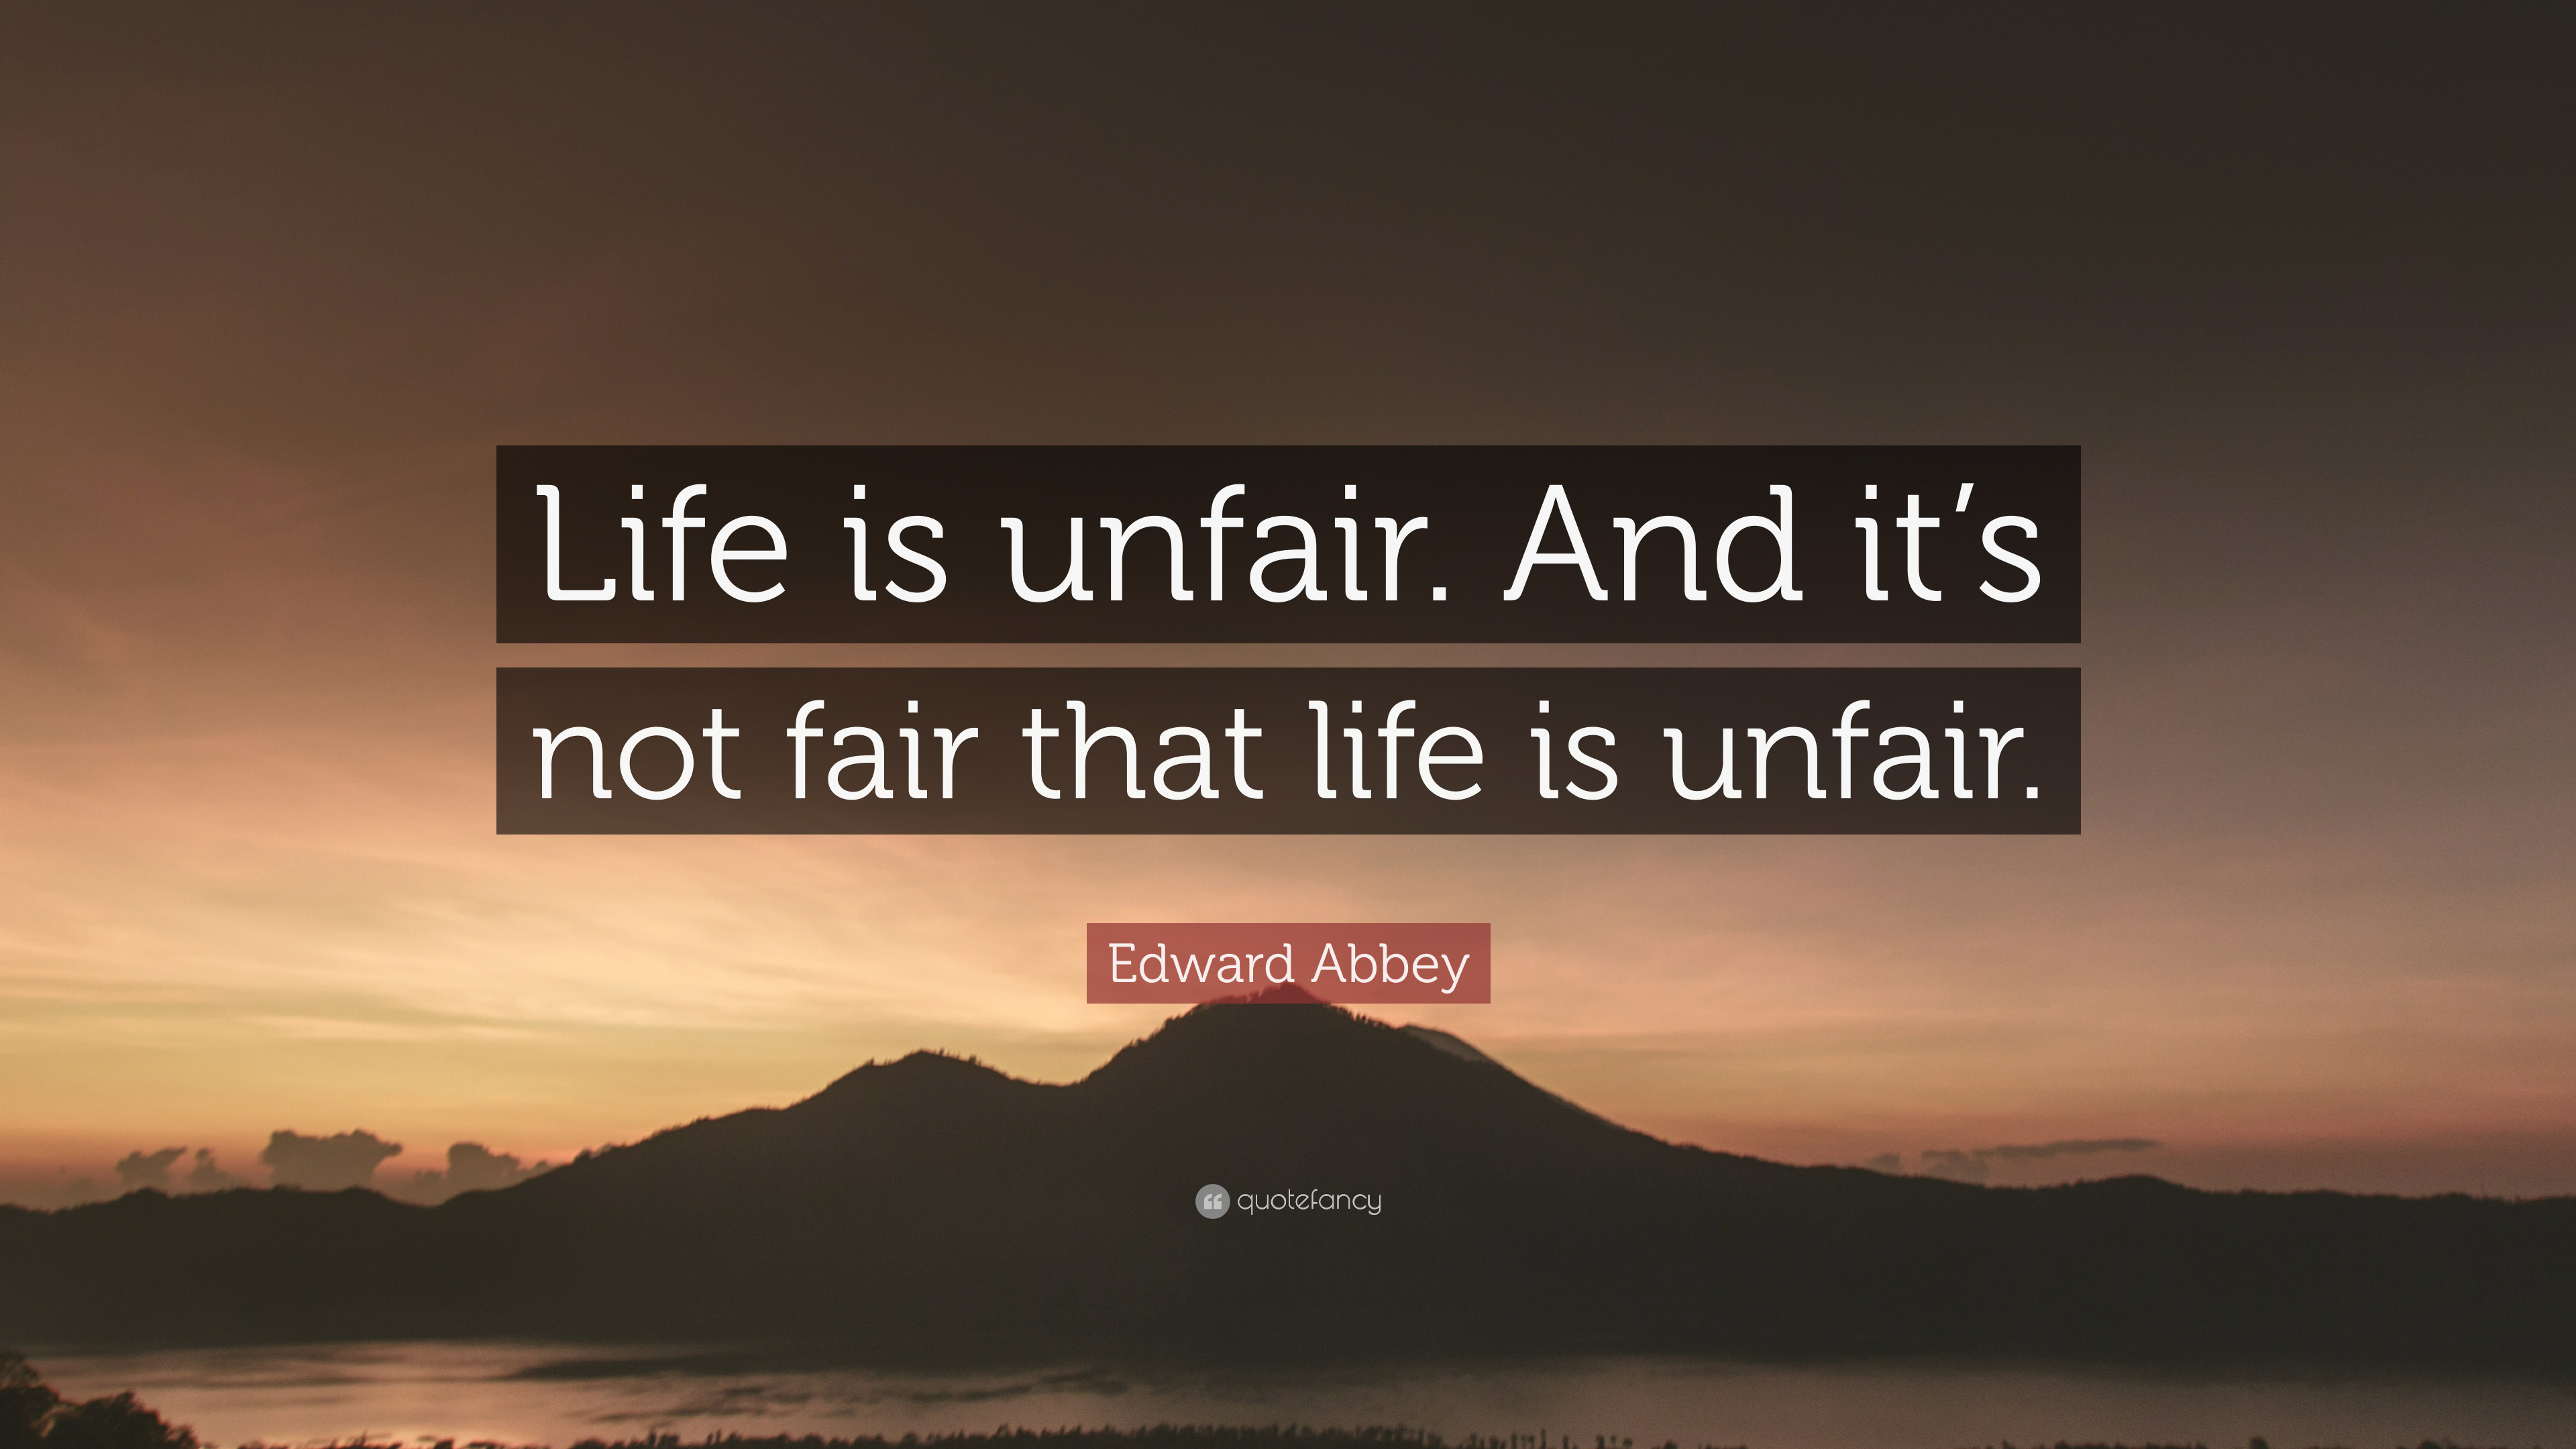 Edward Abbey Quote Life Is Unfair And It S Not Fair That Life Is